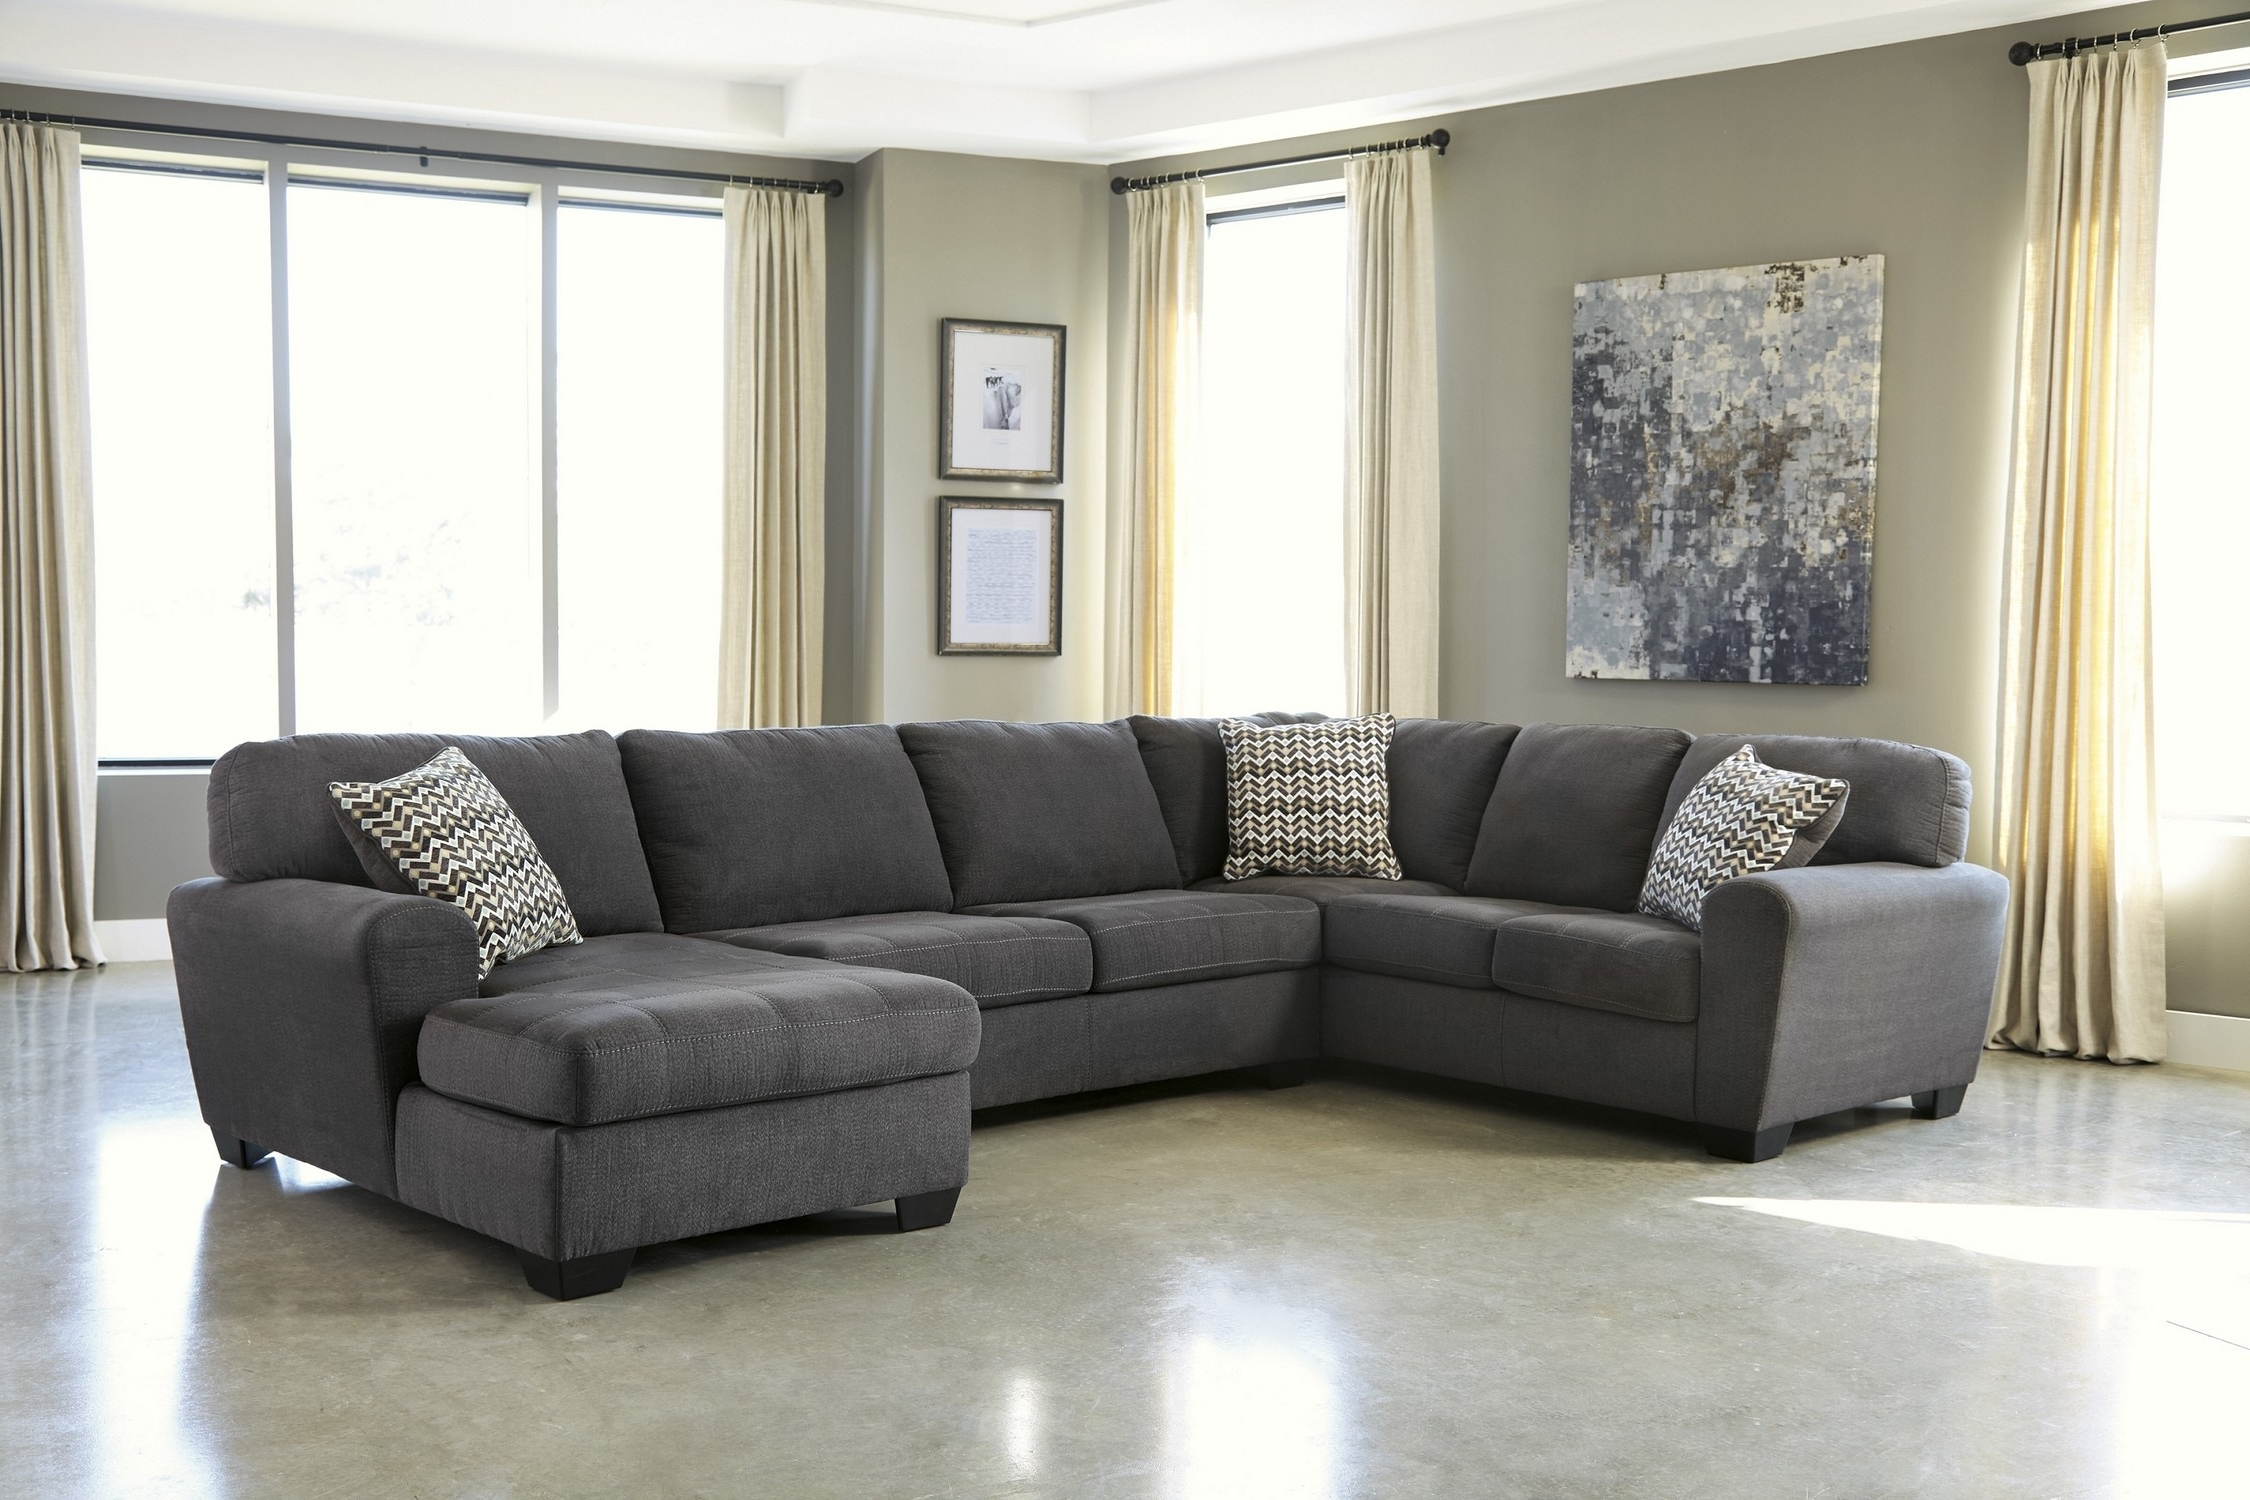 Luxury Charcoal Sectional Sofa 52 On Office Sofa Ideas With With Regard To Current Sectional Sofas Under  (View 4 of 20)